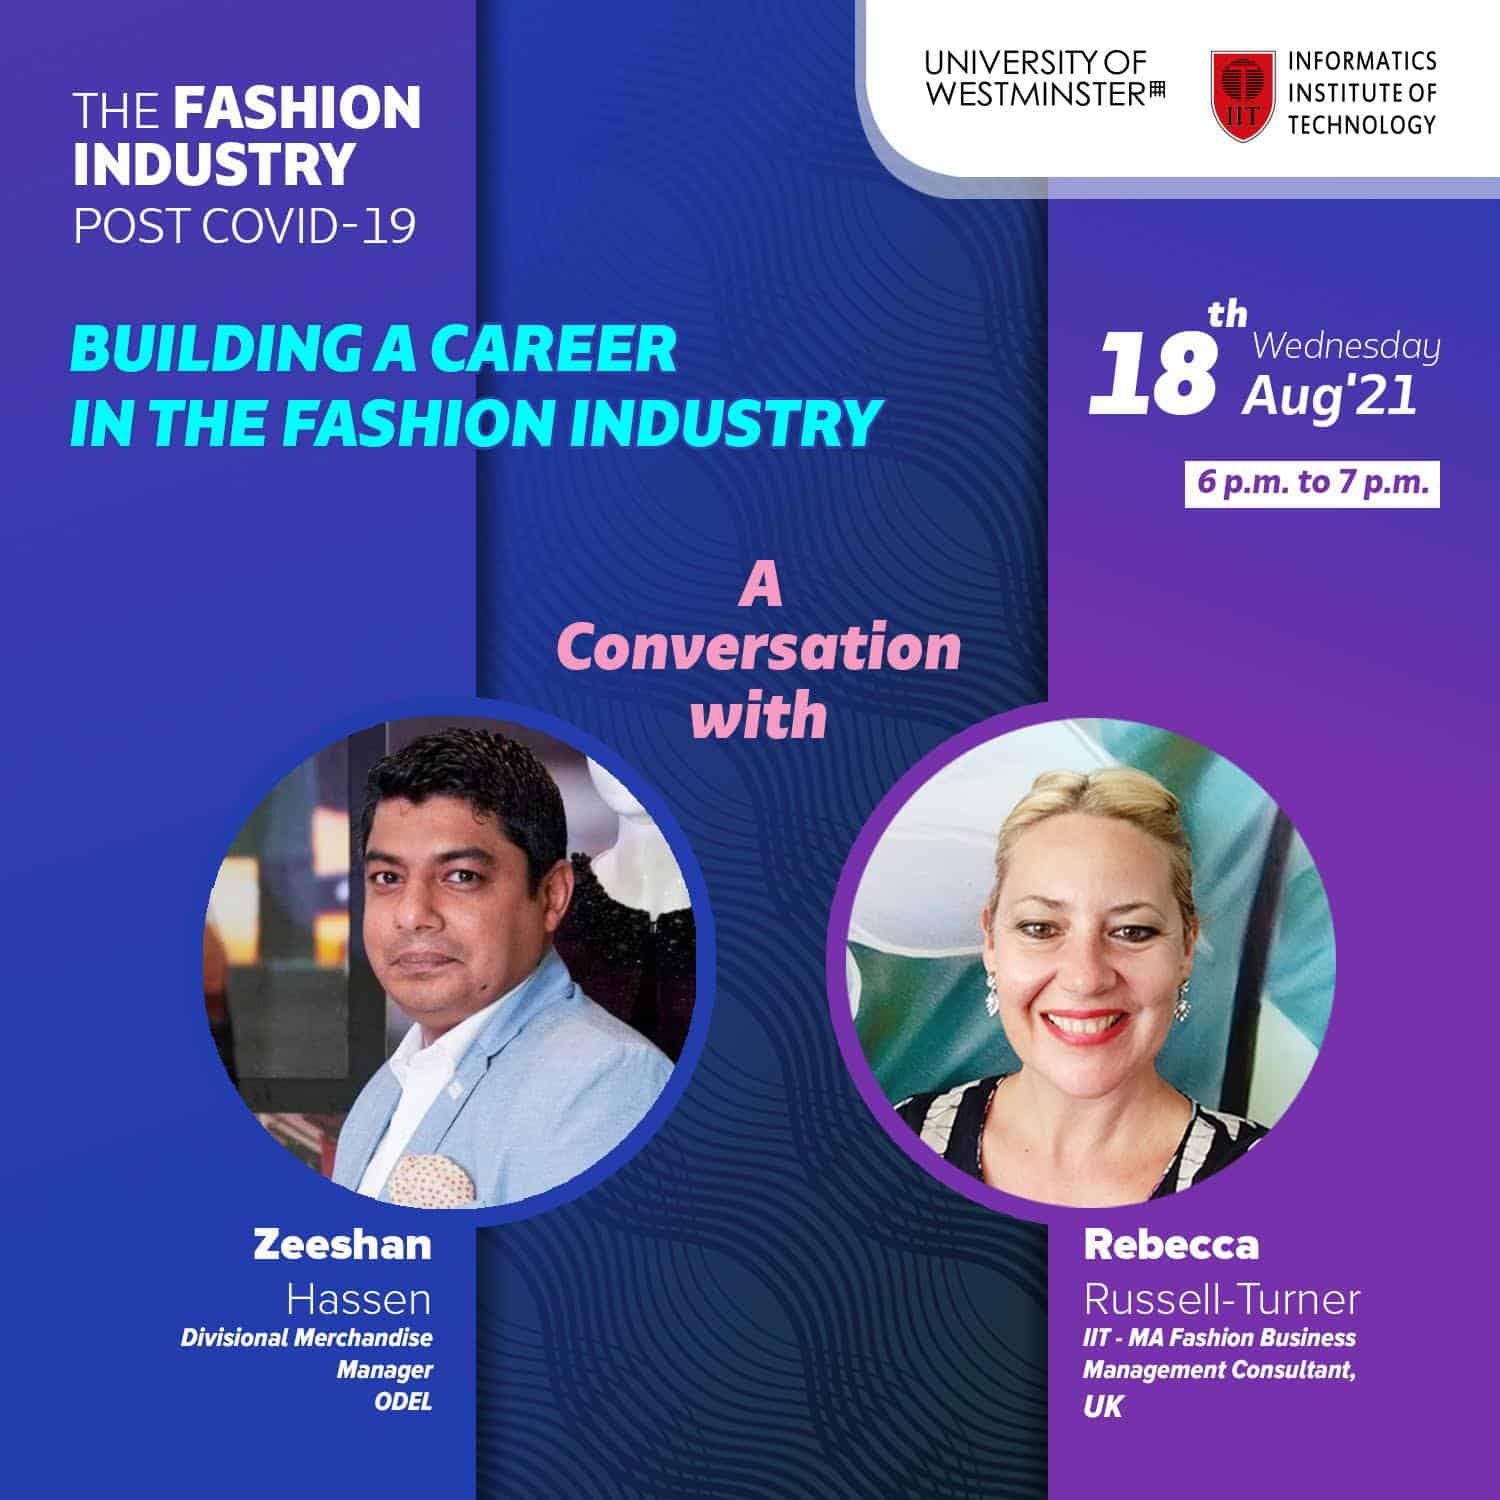 Building a Career in the Fashion Industry